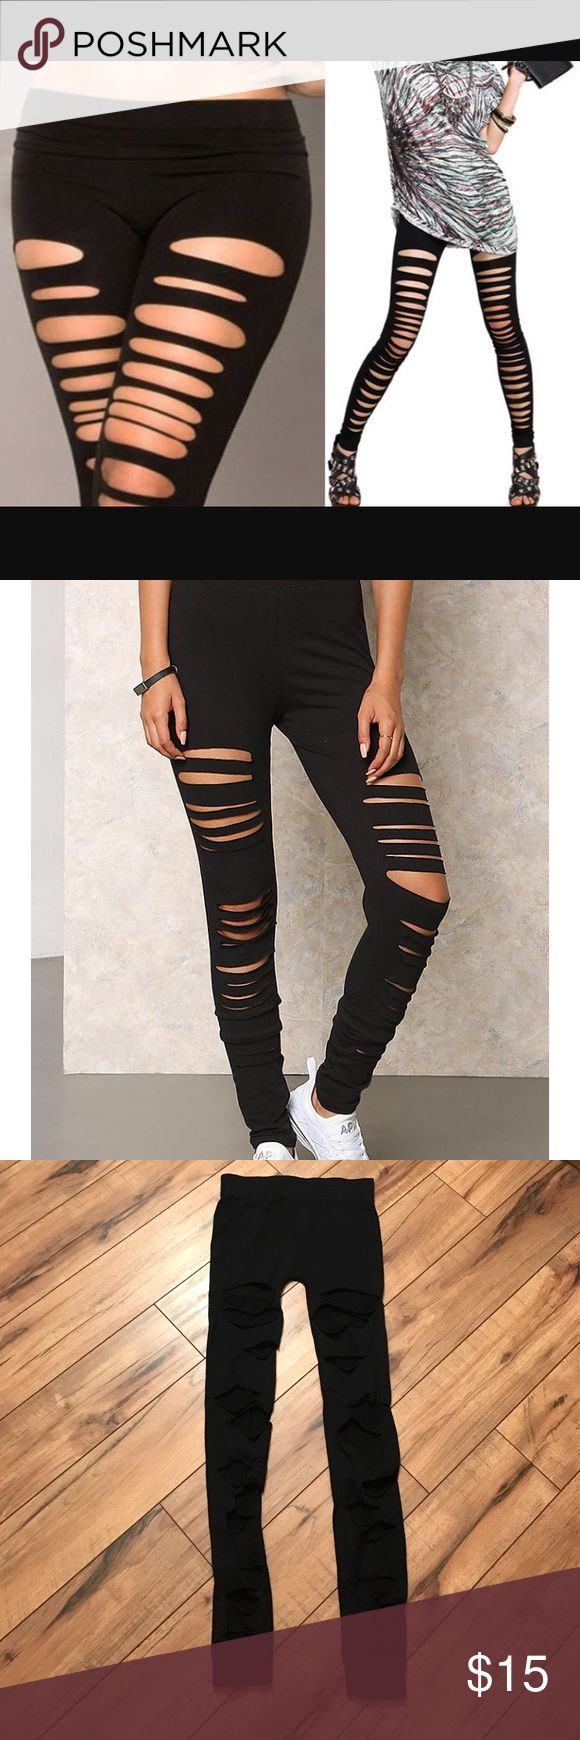 "❌ON HOLD❌Black ripped leggings NWOT. Ordered and never wore. ""See You Monday"" brand. OSFM. Chic ripped leggings with holes placed randomly on each leg. Very soft and comfortable and a great addition to your wardrobe. From non-smoking home. No defects. See You Monday Pants Leggings"